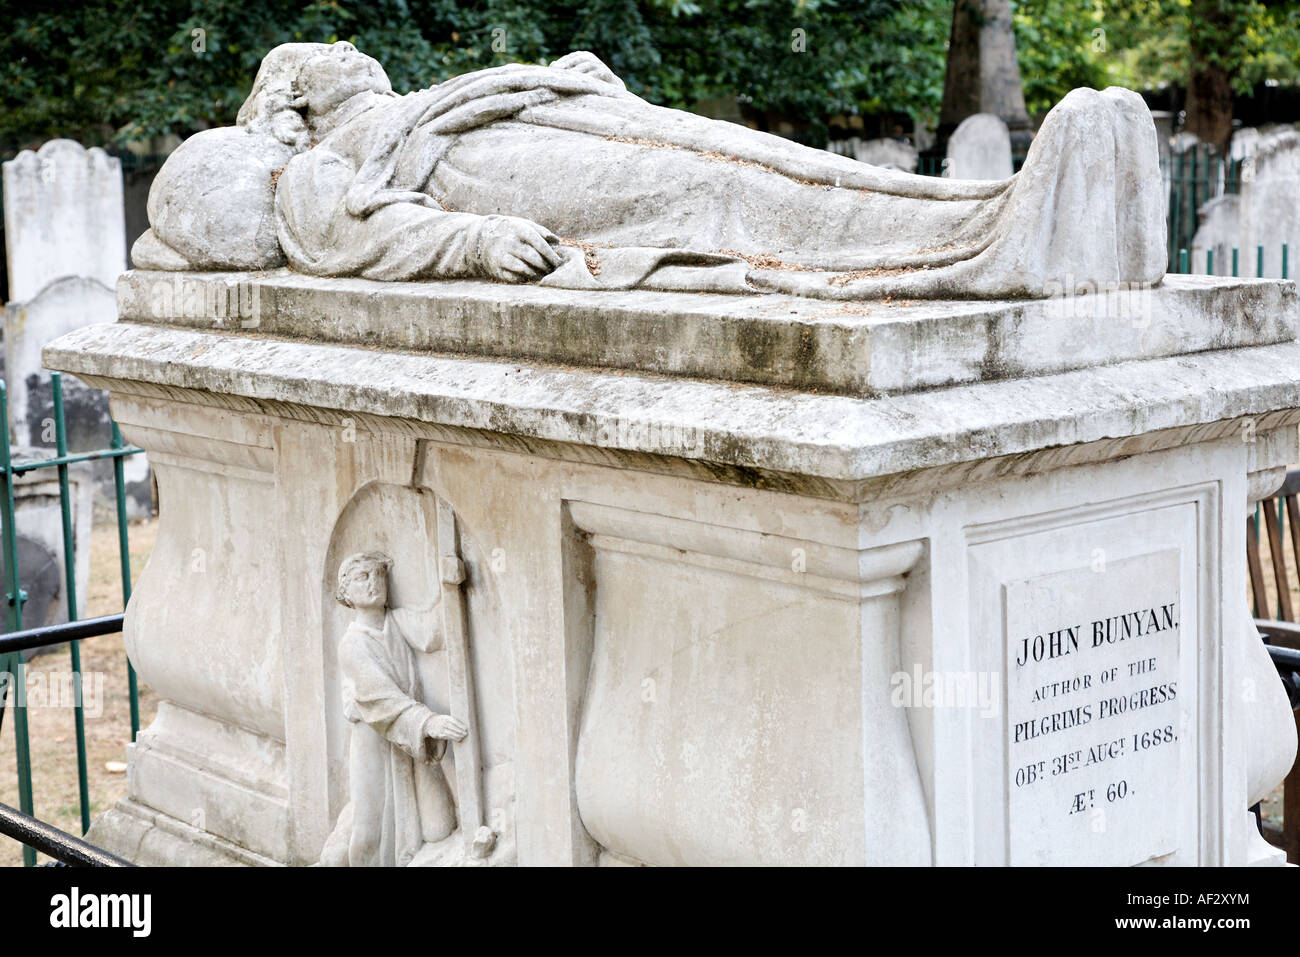 The grave of John Bunyan in Bunhill Fields Cemetery London UK - Stock Image